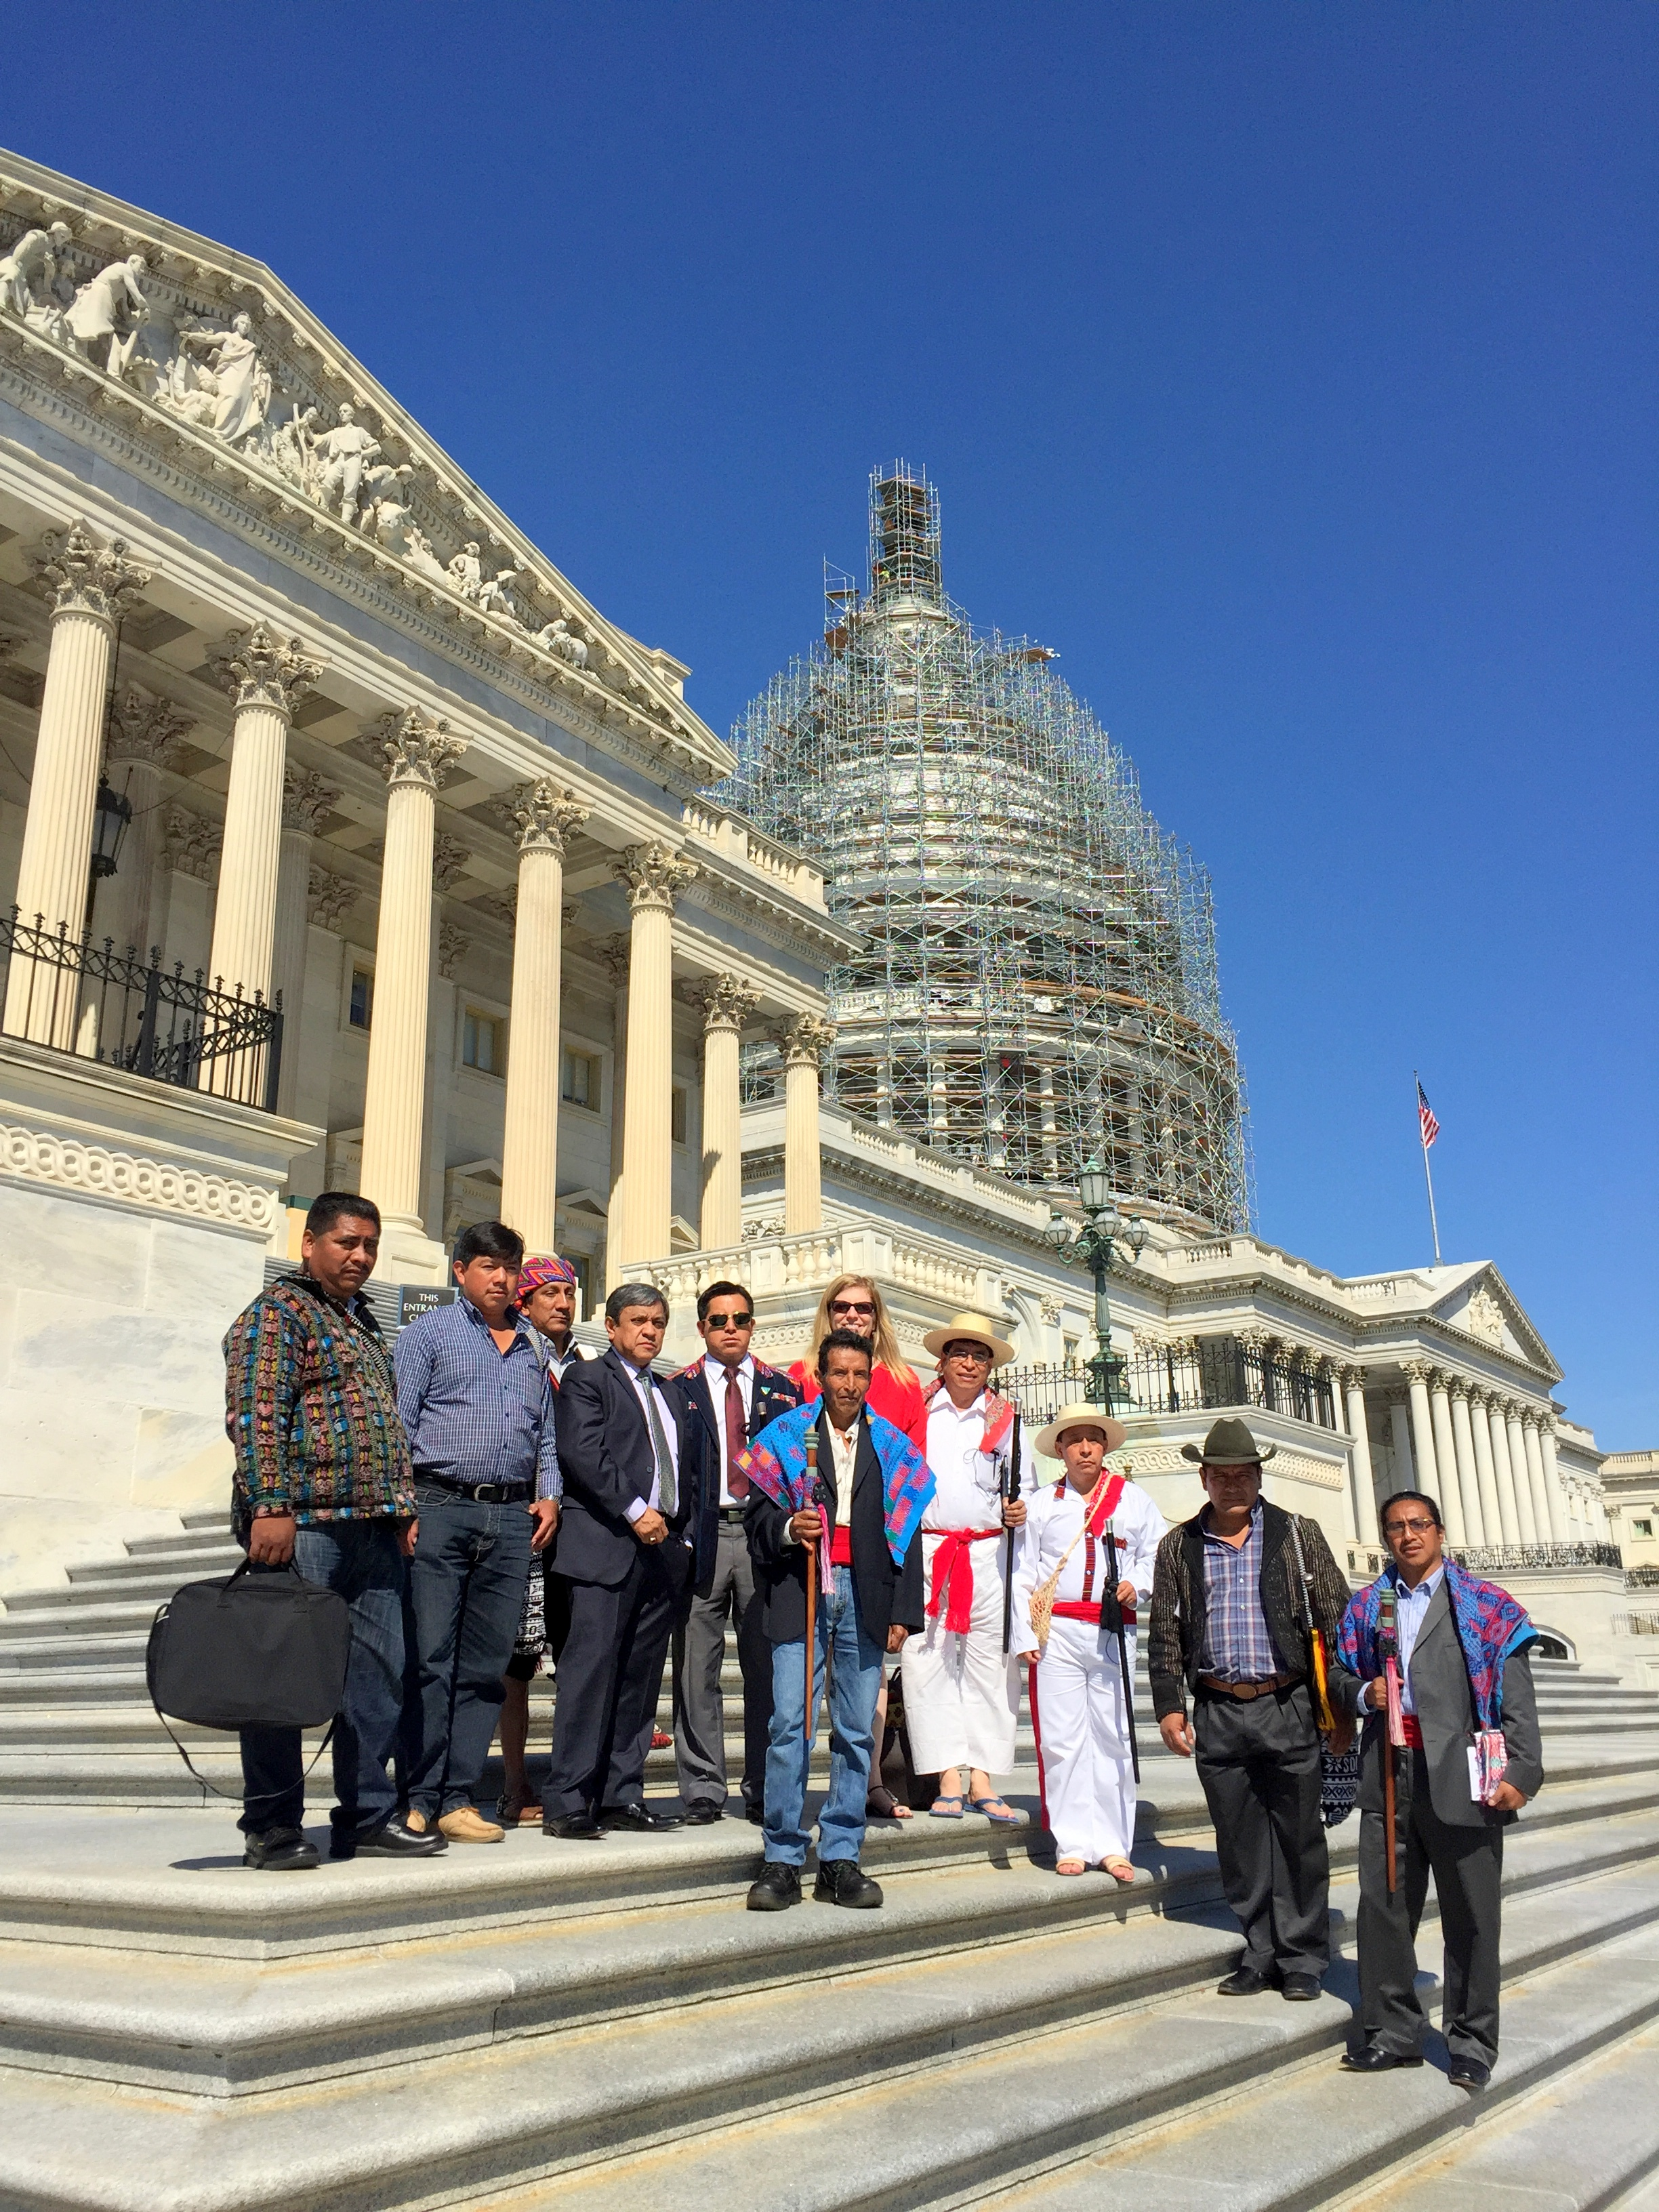 Participants standing on the U.S. Capitol steps.